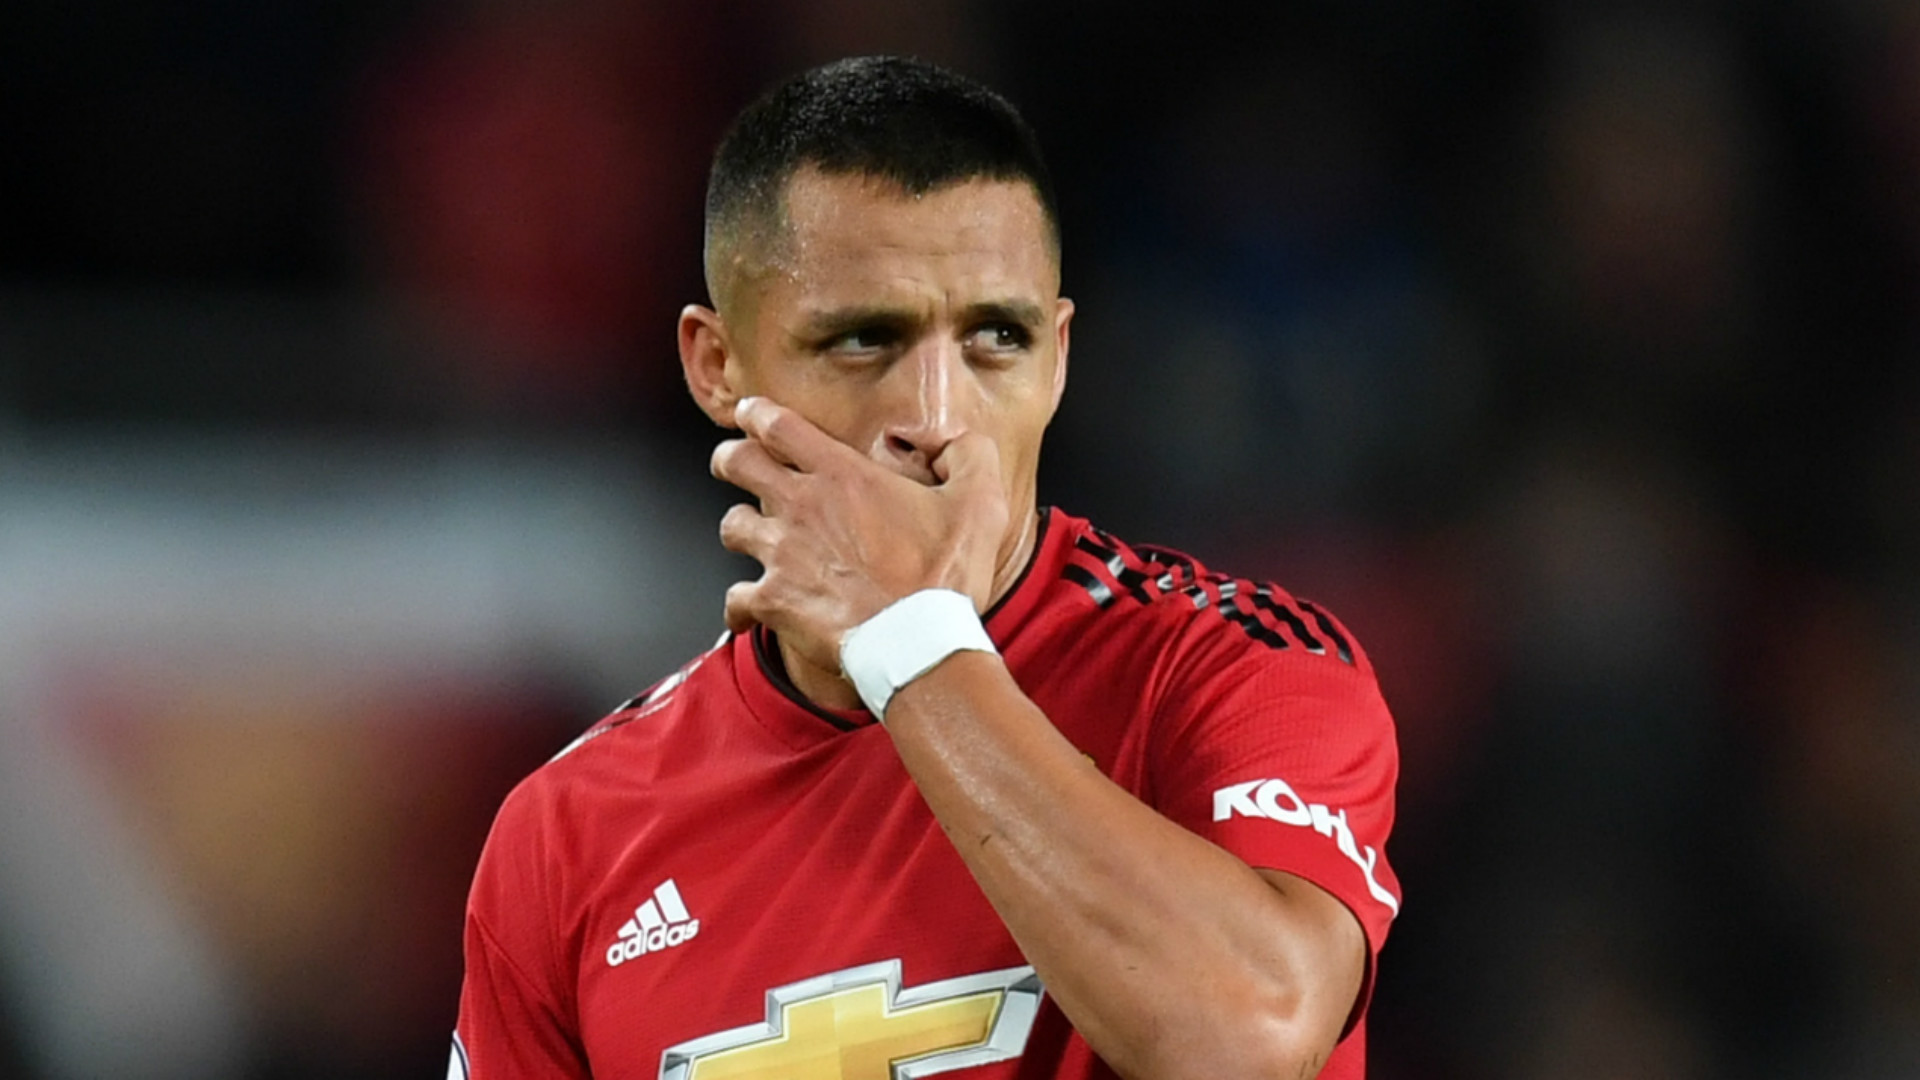 'Maybe he saw a ghost!' - Ex-Man Utd winger Sanchez mocked by Rafael as he claims he 'played so bad every time'